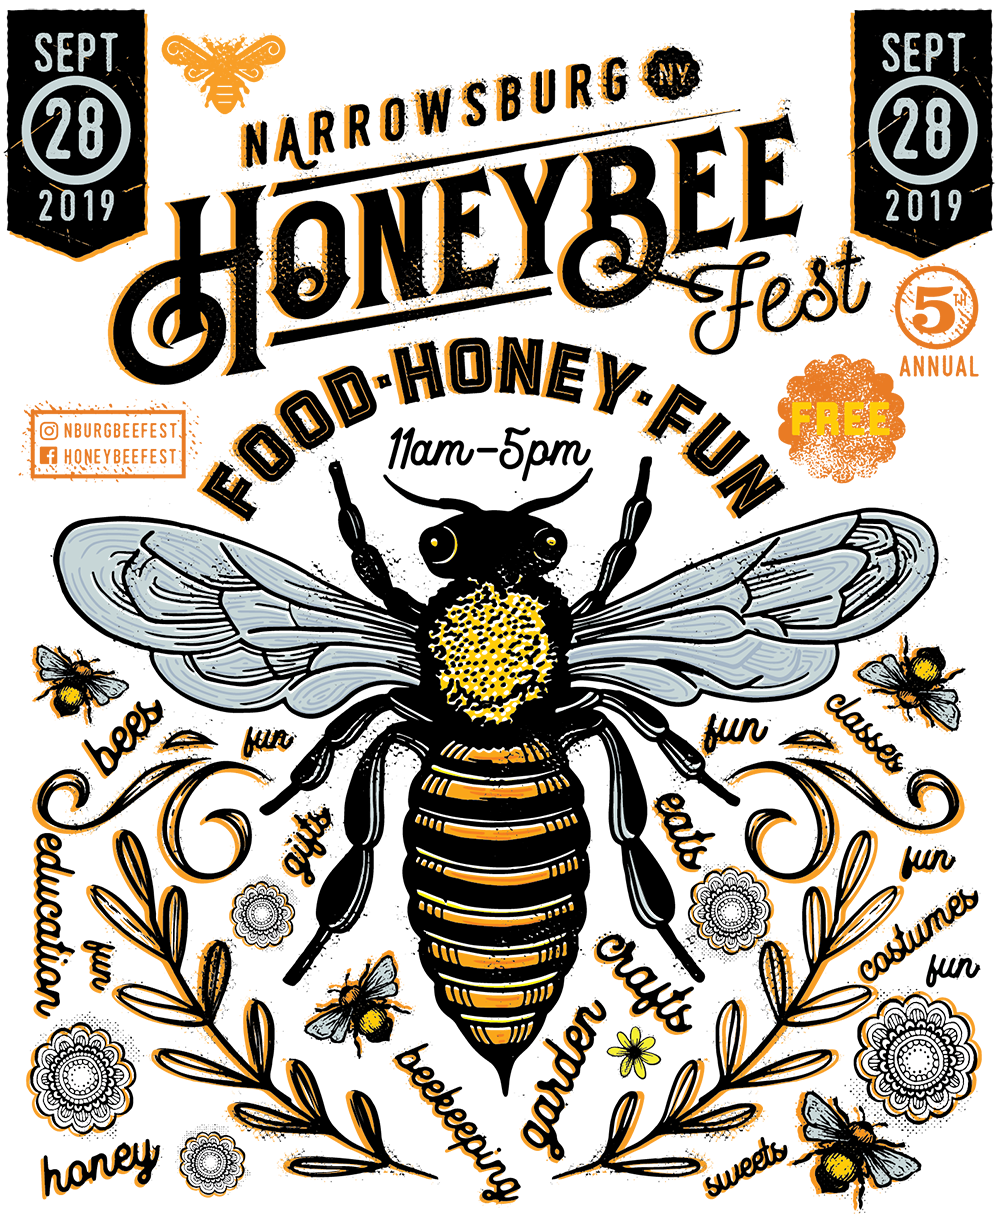 Narrowsburg Honey Bee Fest